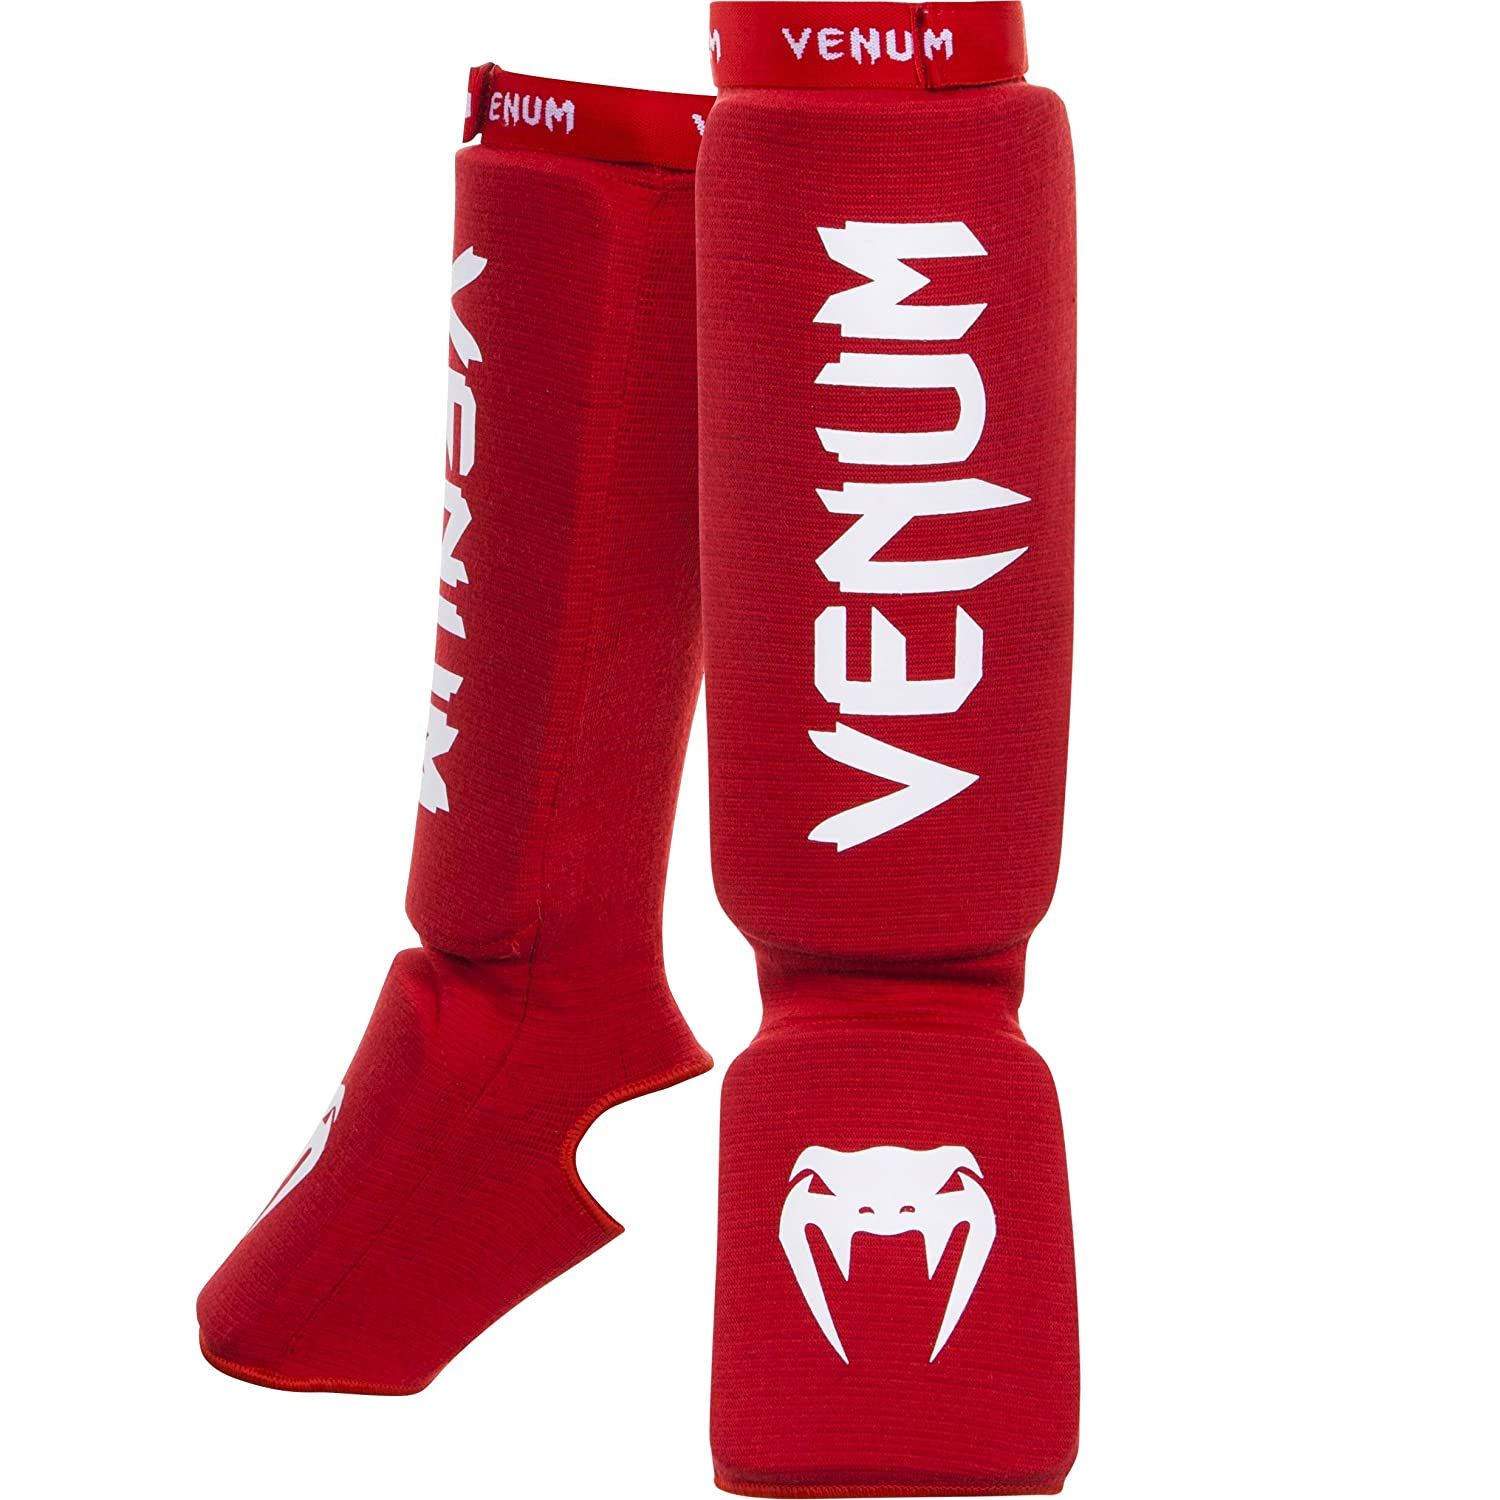 "Best Top King Shin Guards - Venum ""Kontact"" Shin and Instep Guards"